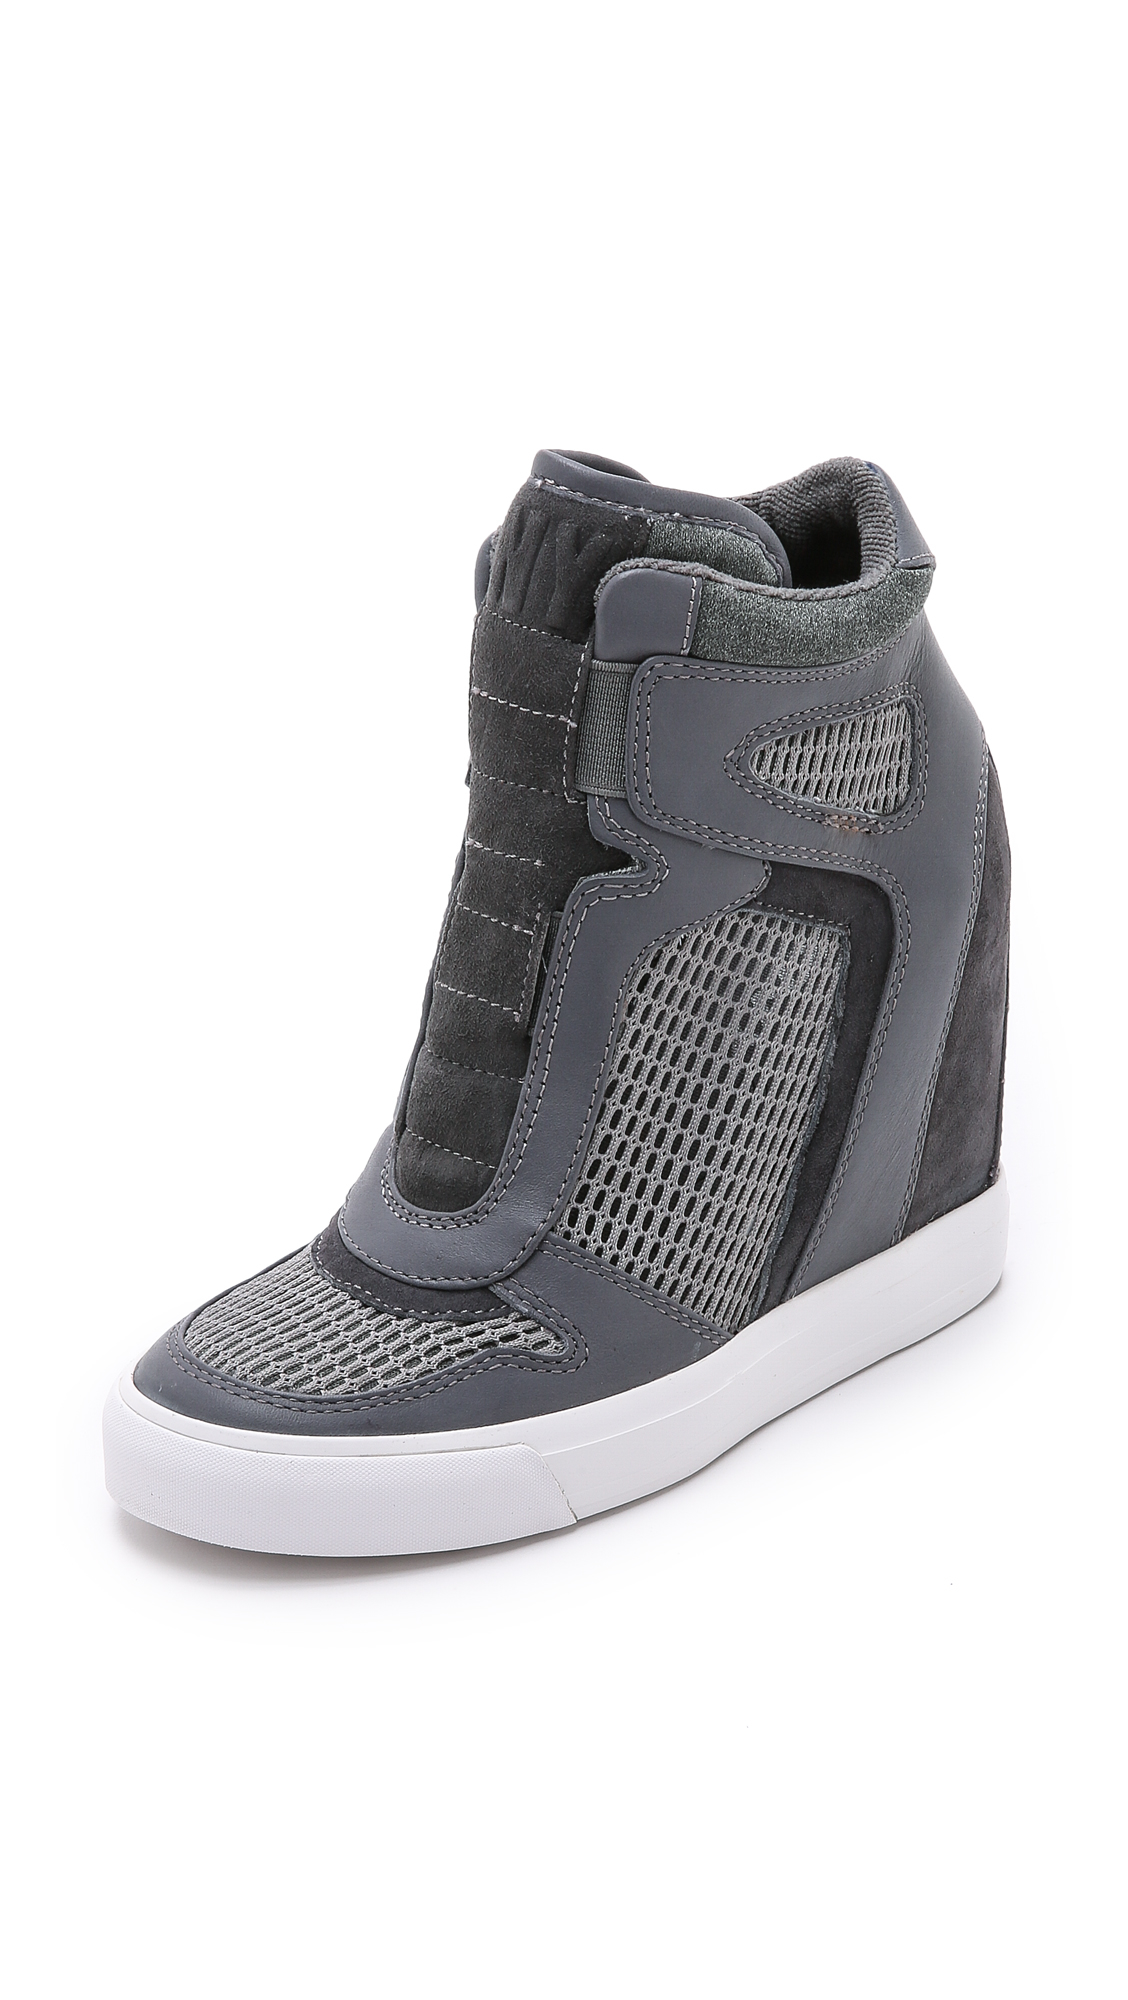 dkny grand wedge sneakers greycharcoal in gray lyst